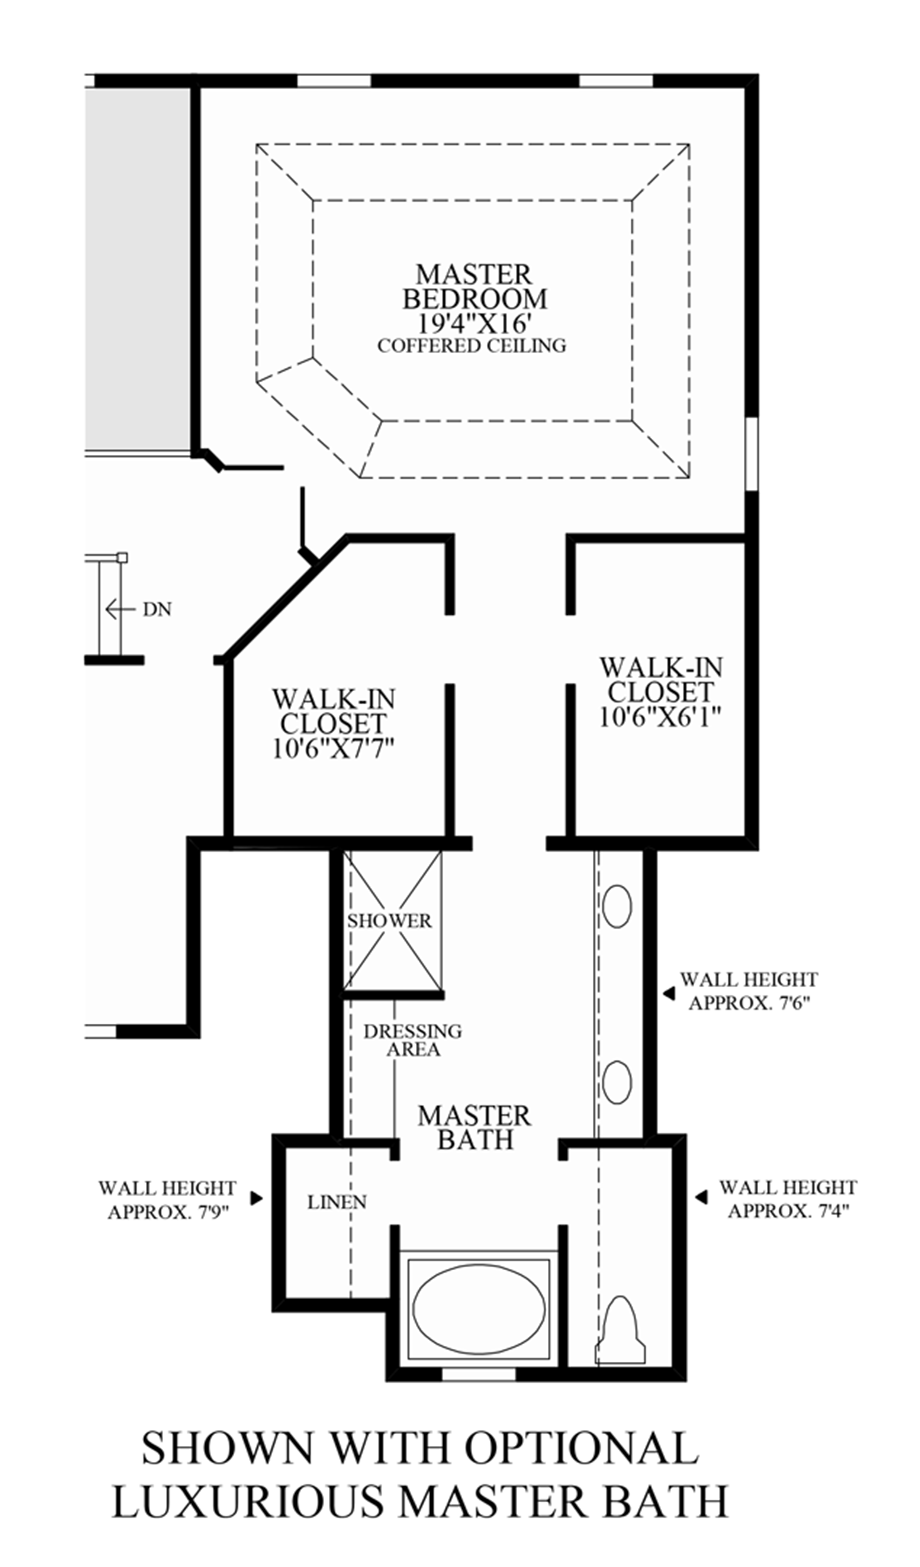 High pointe at st georges carolina collection the for Master bath and closet plans